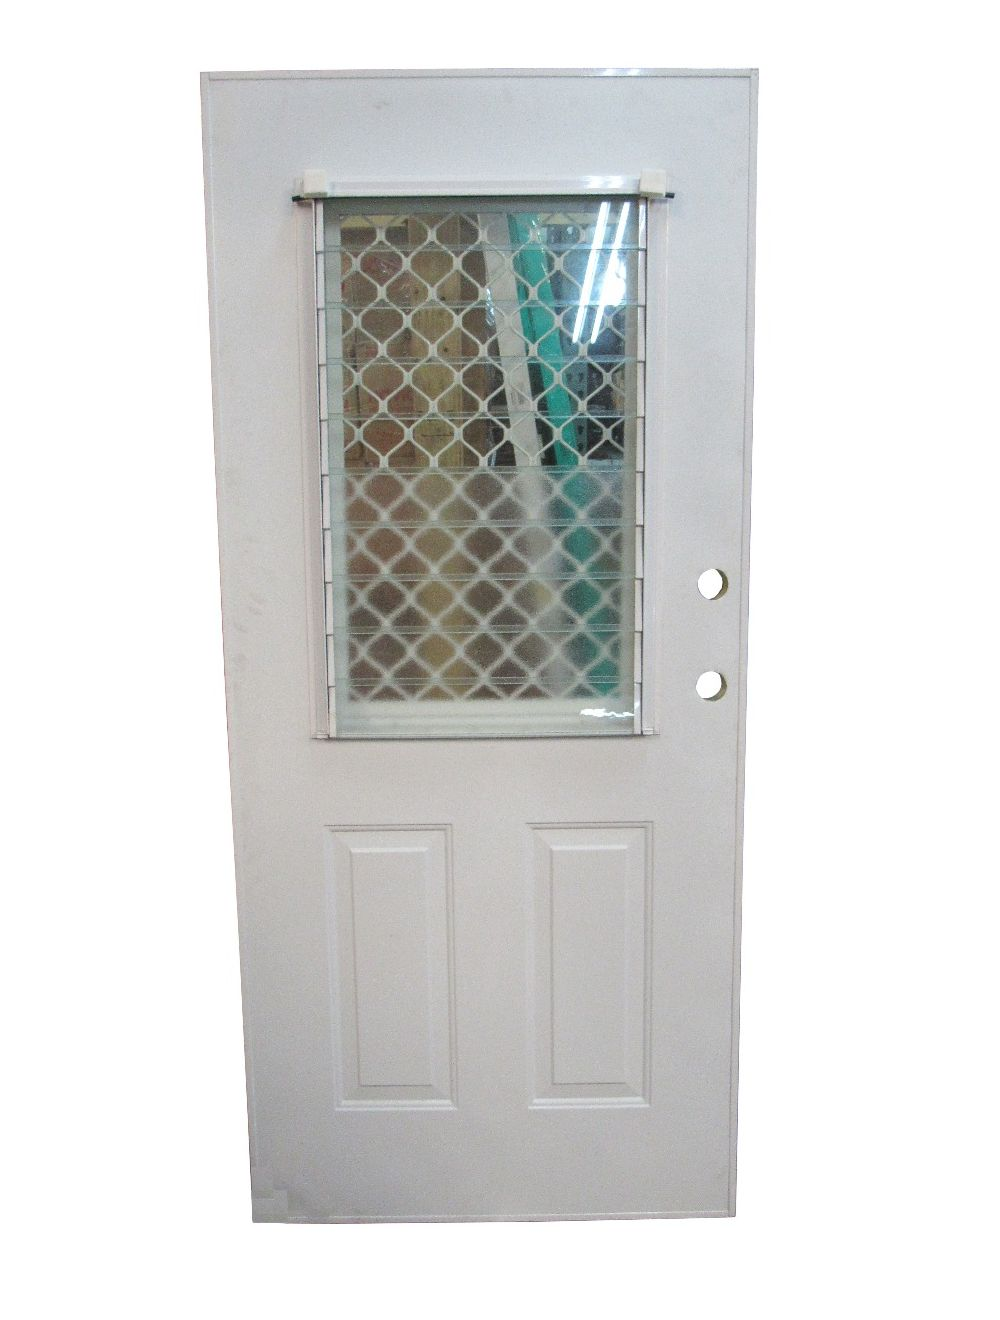 STEEL DOOR - 1/2 GLASS LOUVRE AND GRILL (SALE)